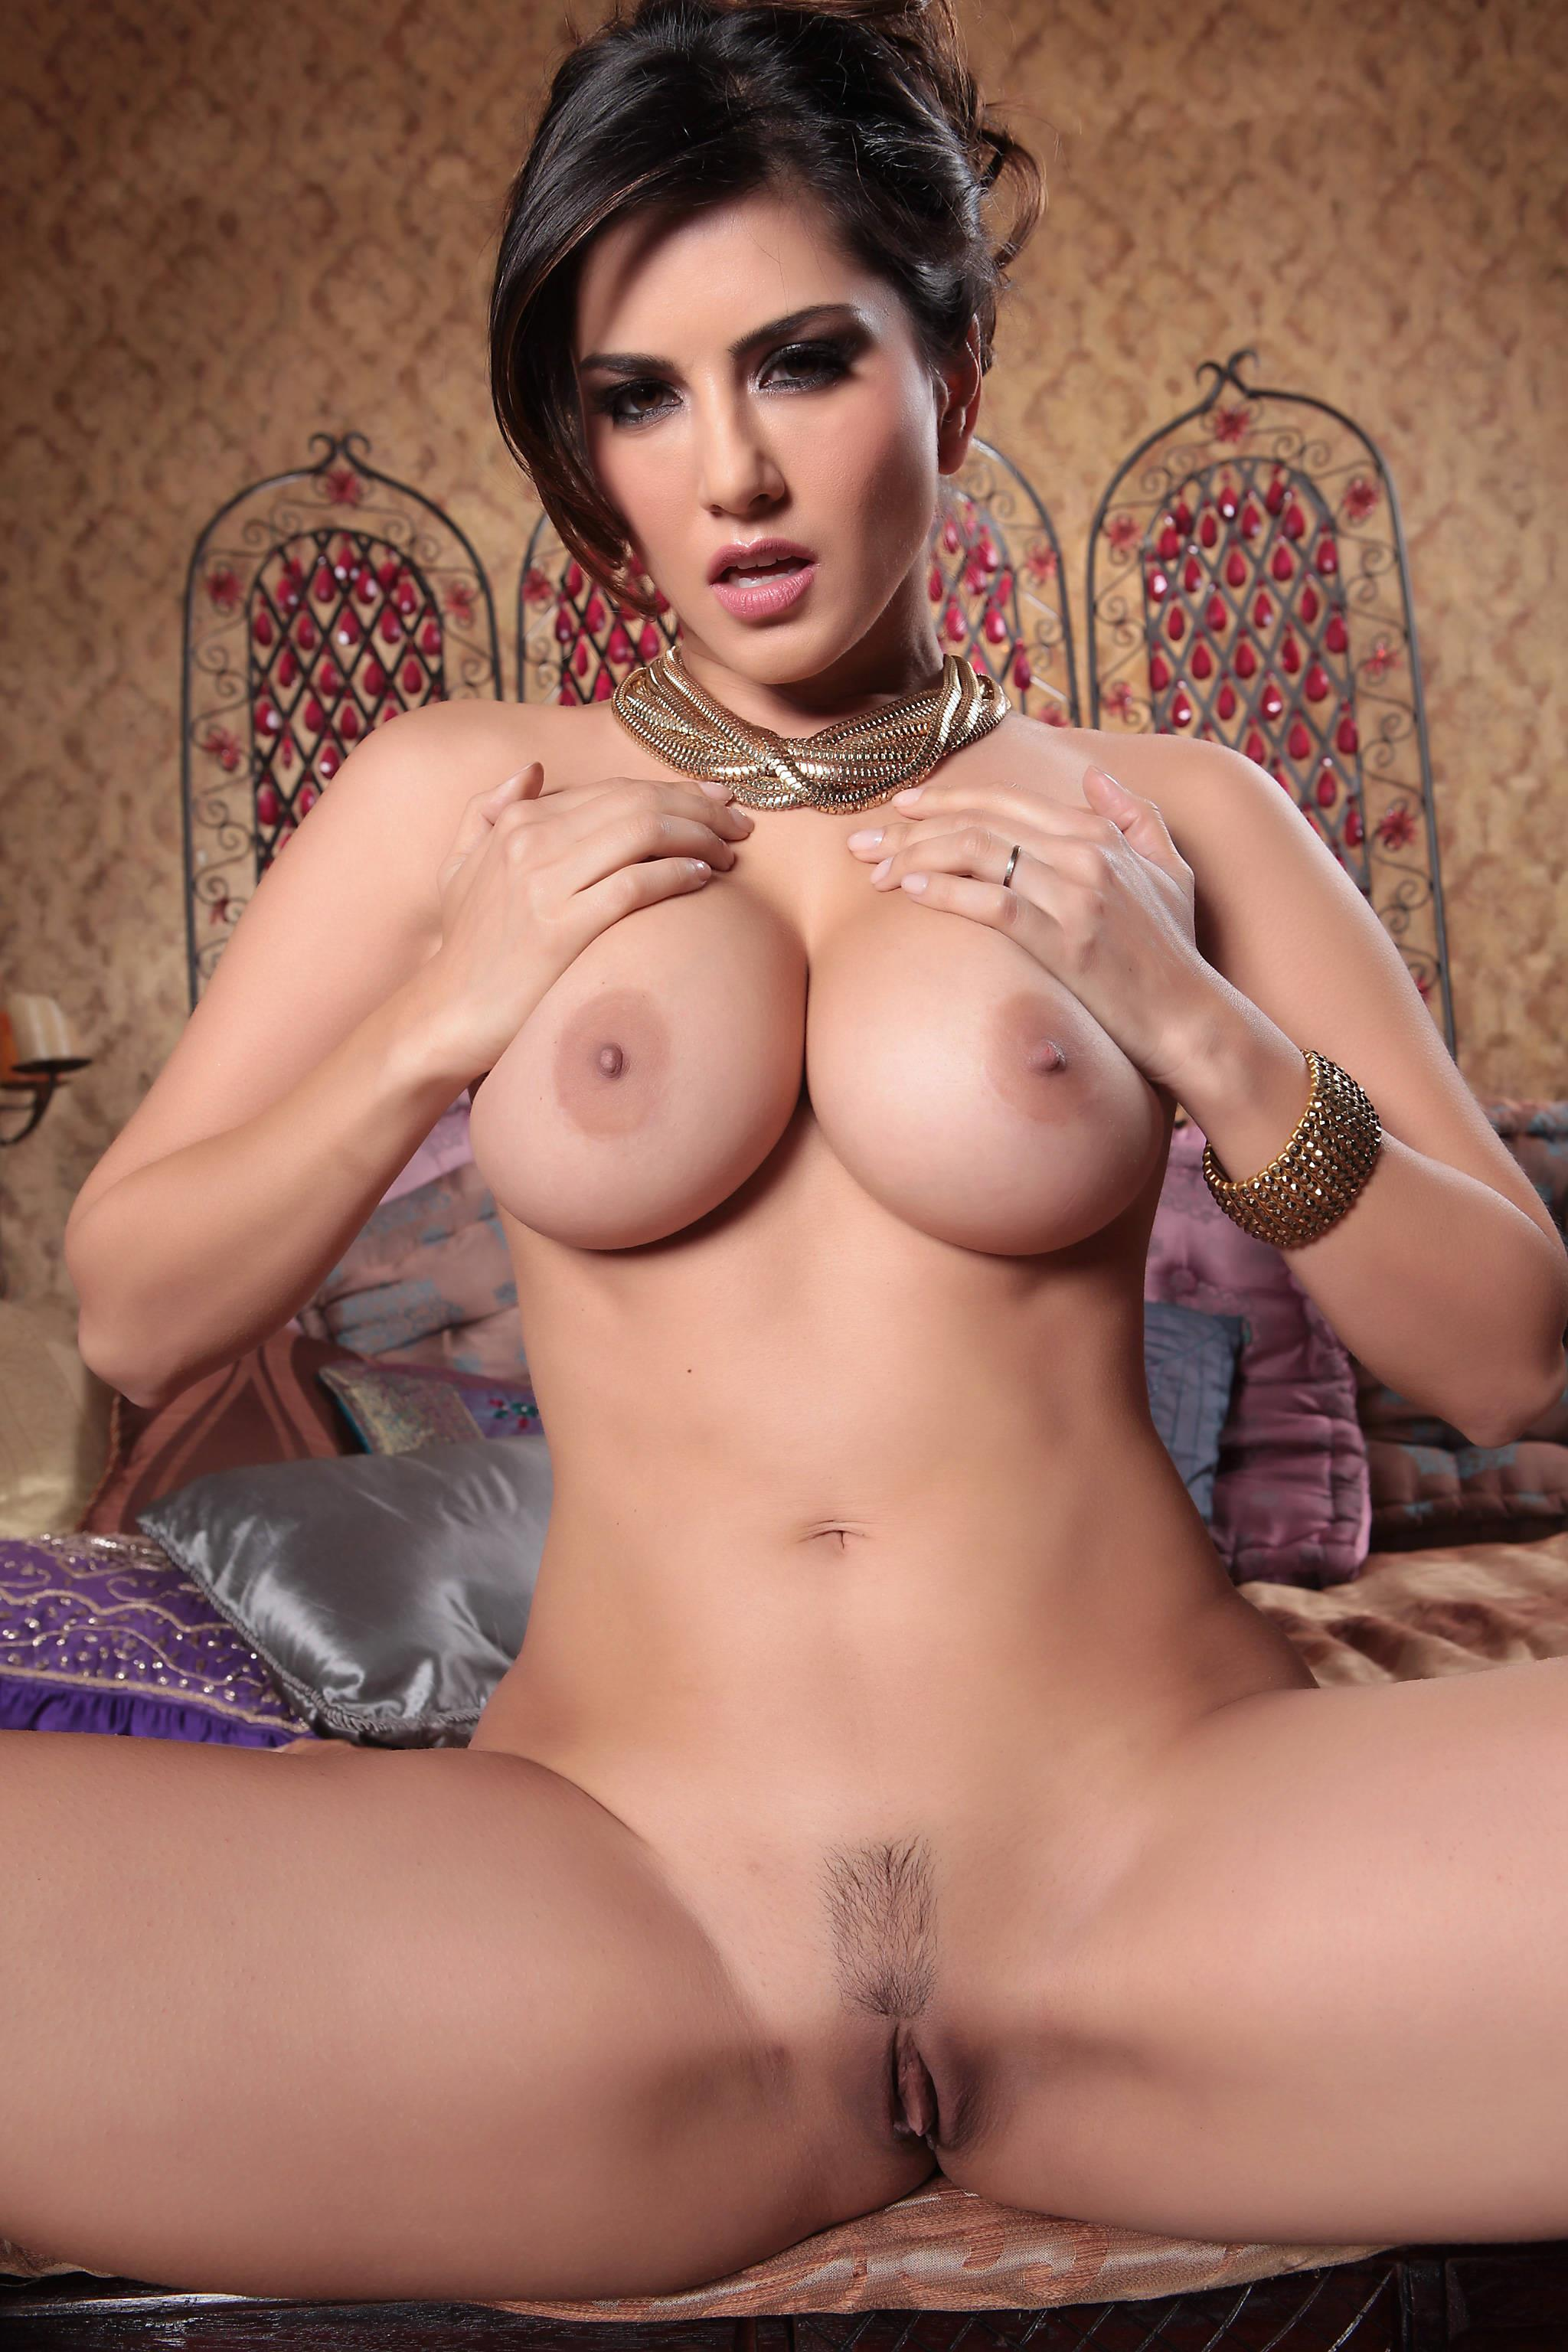 Sunny Leone Nude - 139 Pictures In An Infinite Scroll-3146